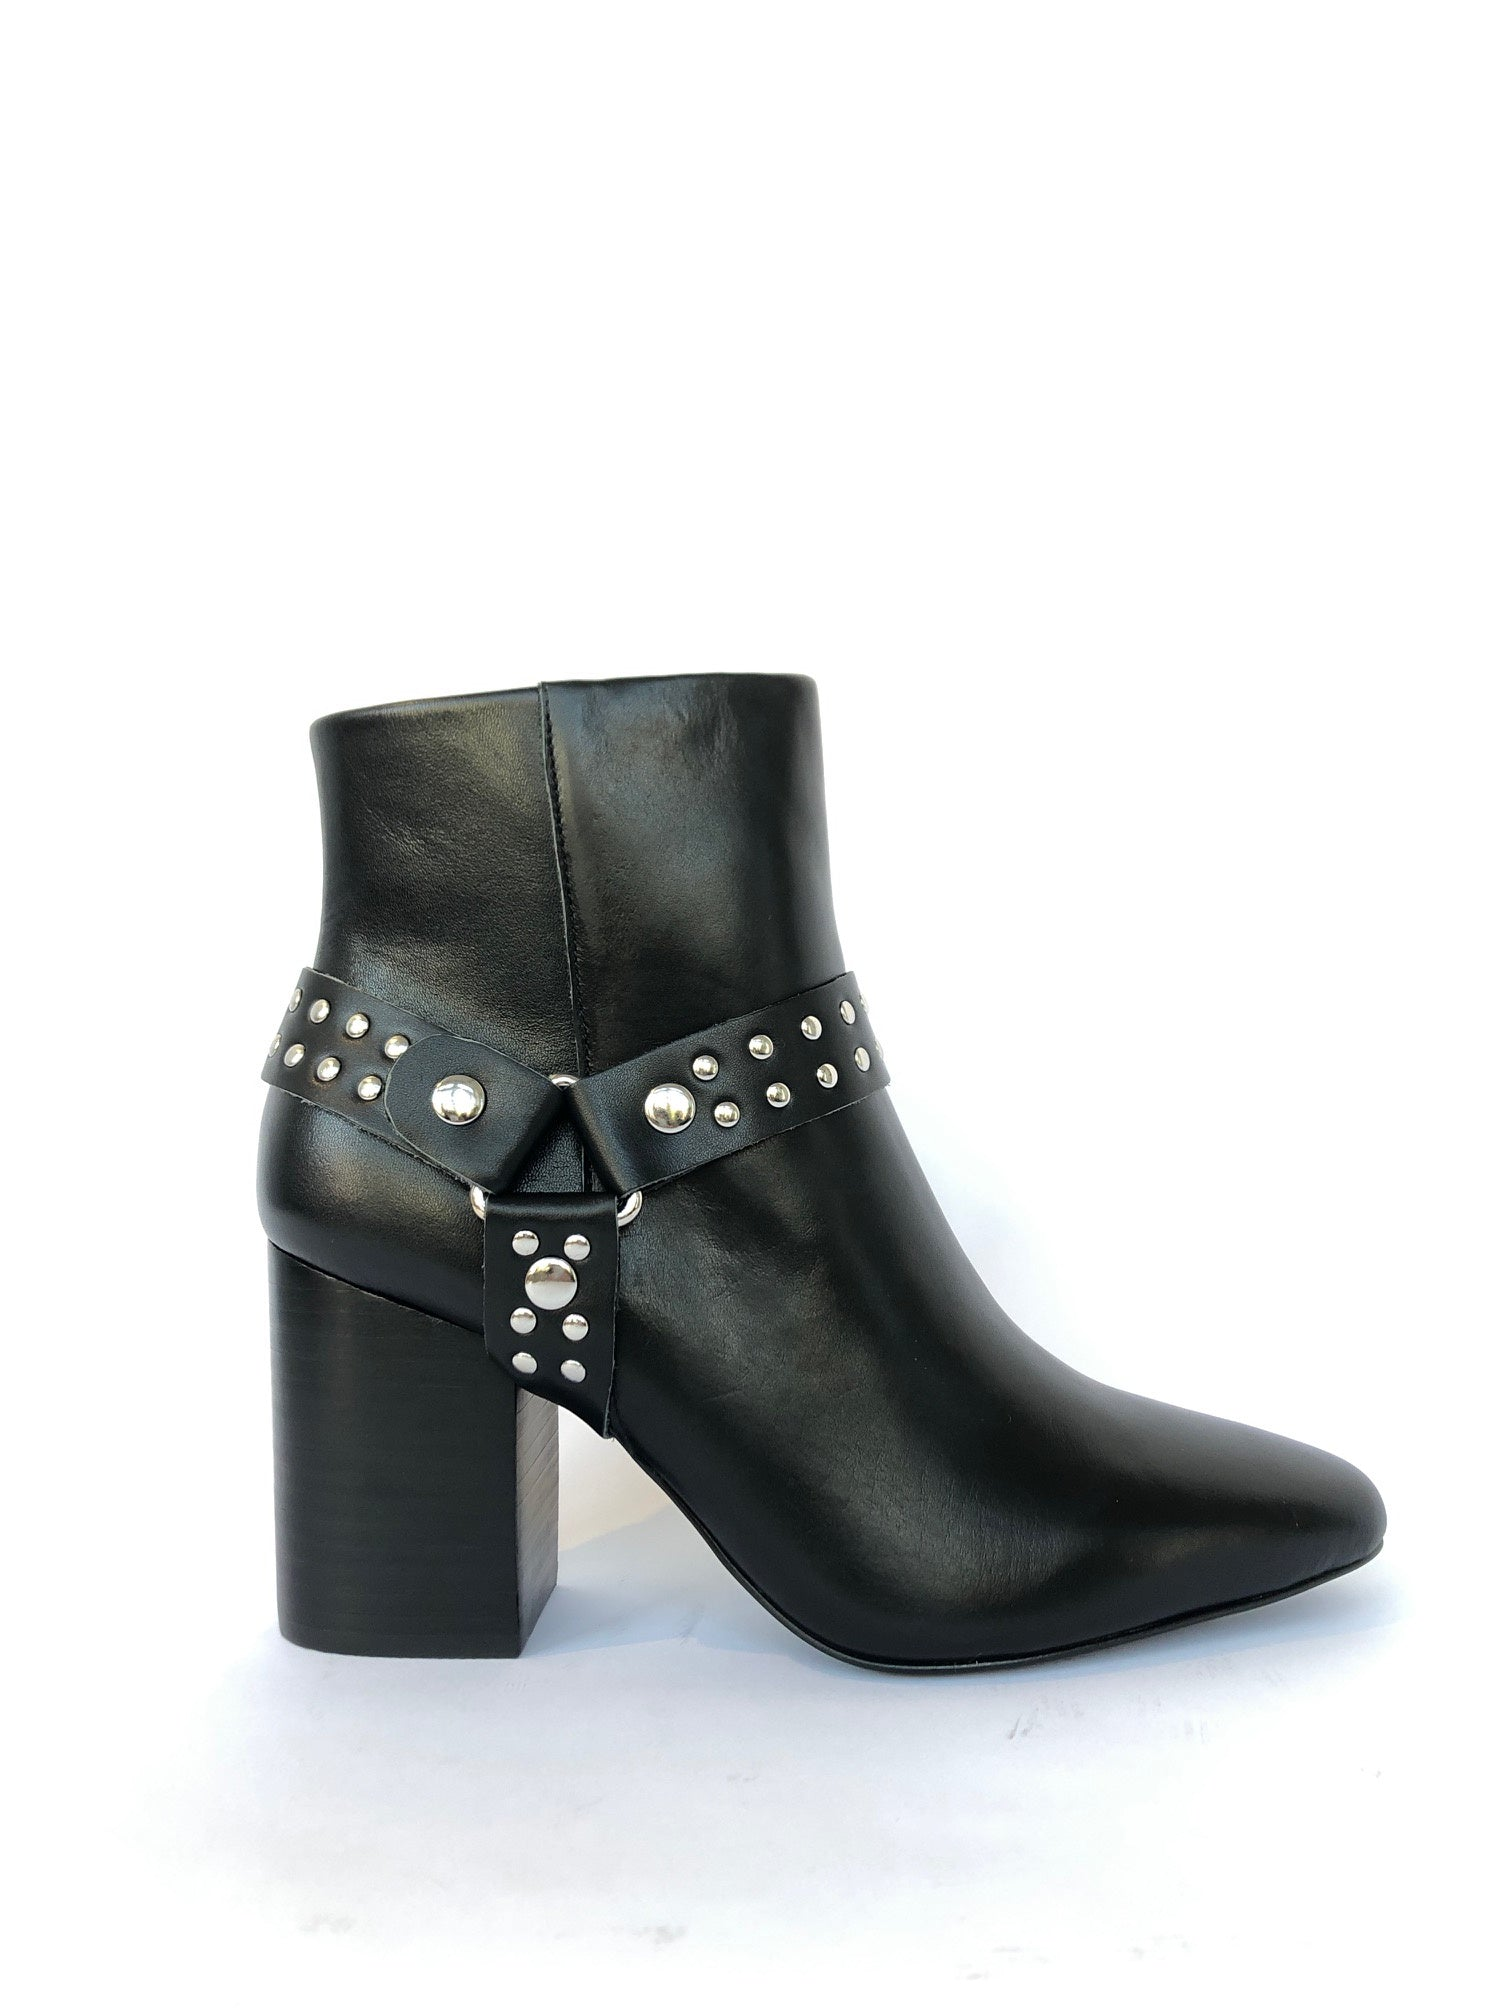 SOL SANA- TEGAN BOOT II IN BLACK